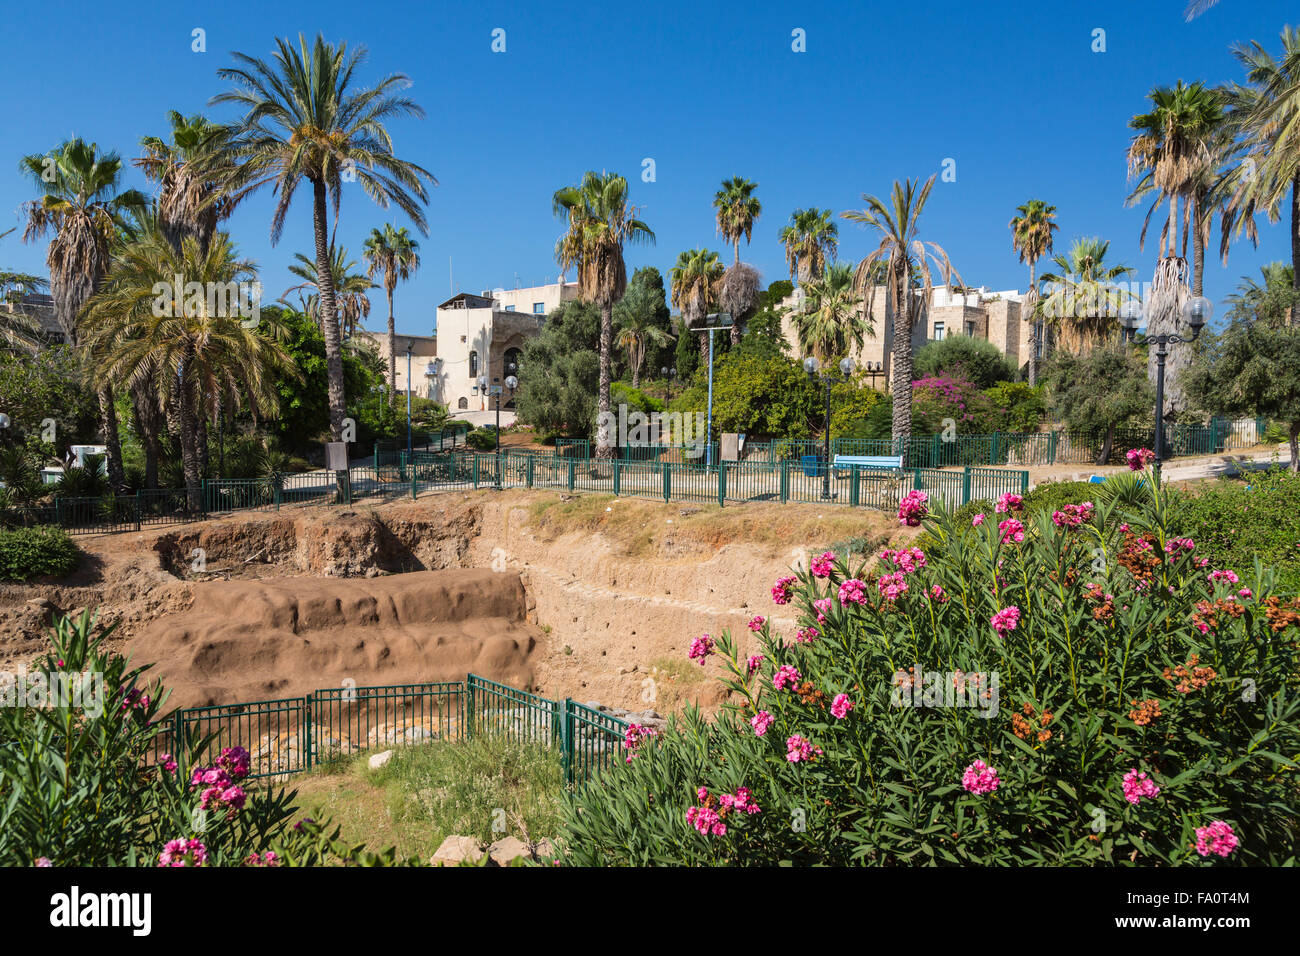 Excavations in the old city of Jaffa, Tel Aviv, Israel, Middle East. - Stock Image